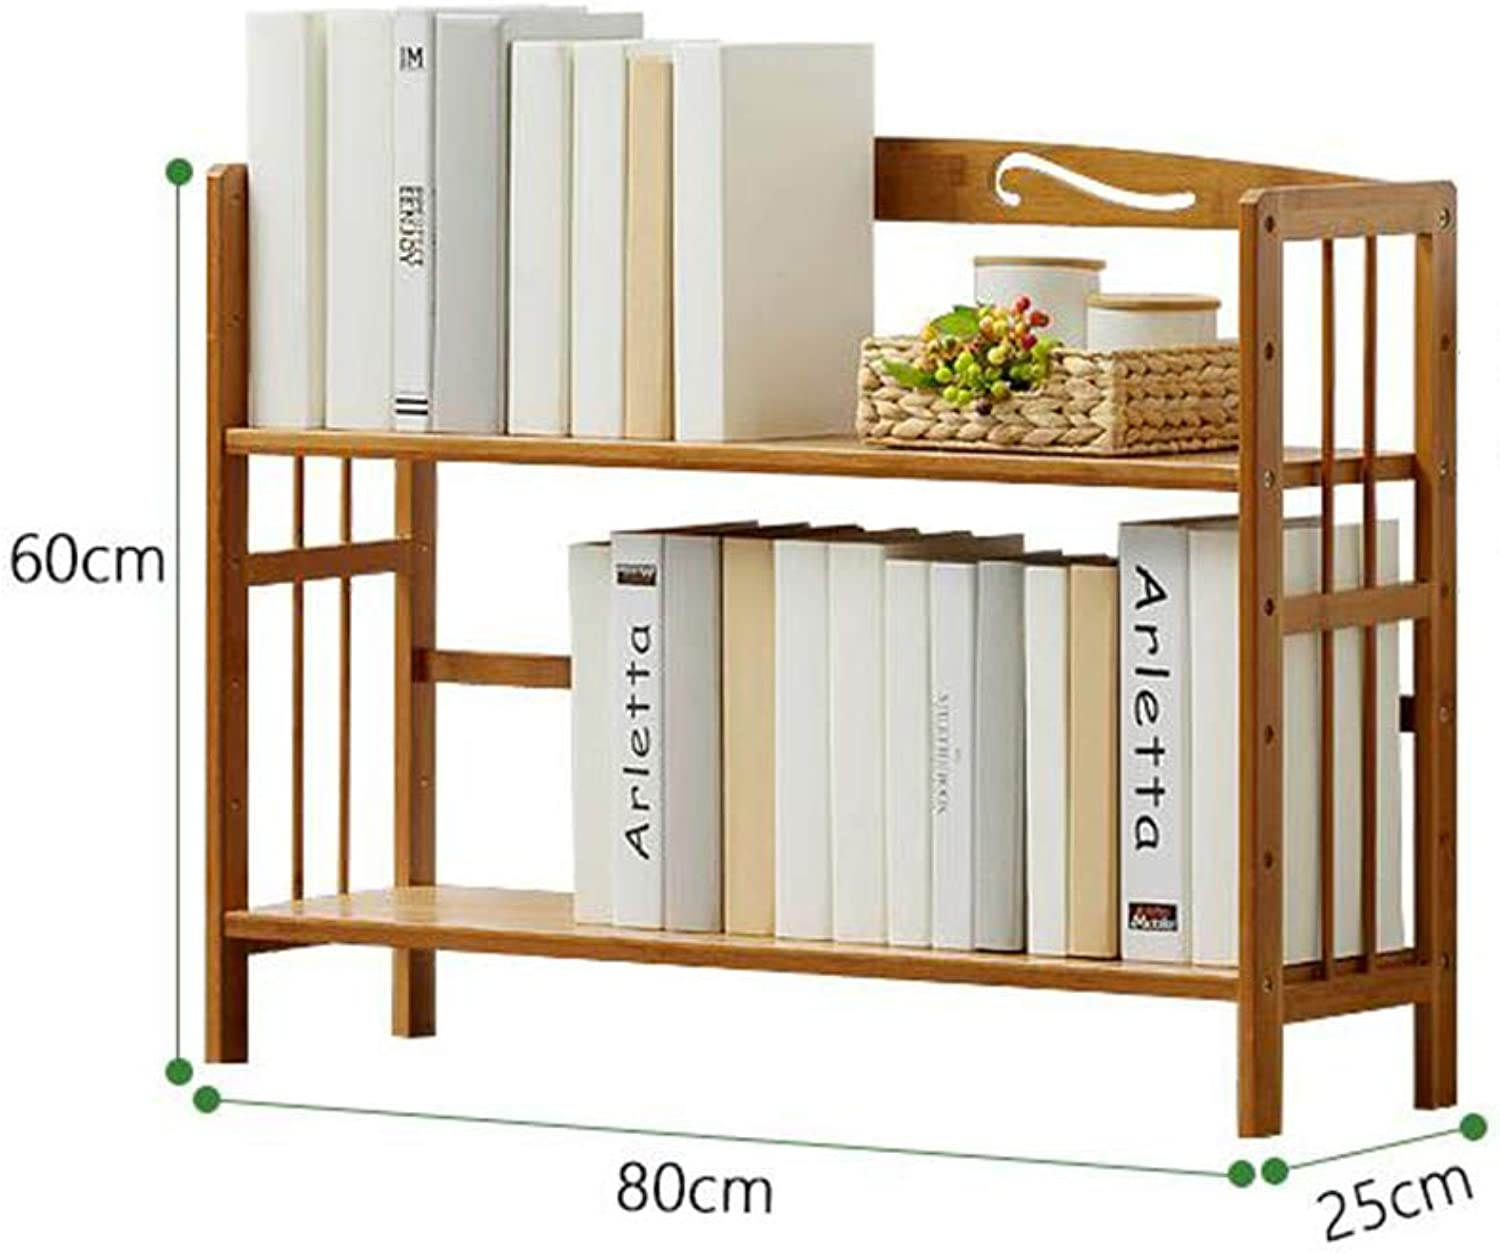 ZHPRZD Bookcase Bookcase Natural Bamboo Desk Office Home Neat Desktop Storage Storage Rack Display Stand (Size   80  25  60cm)